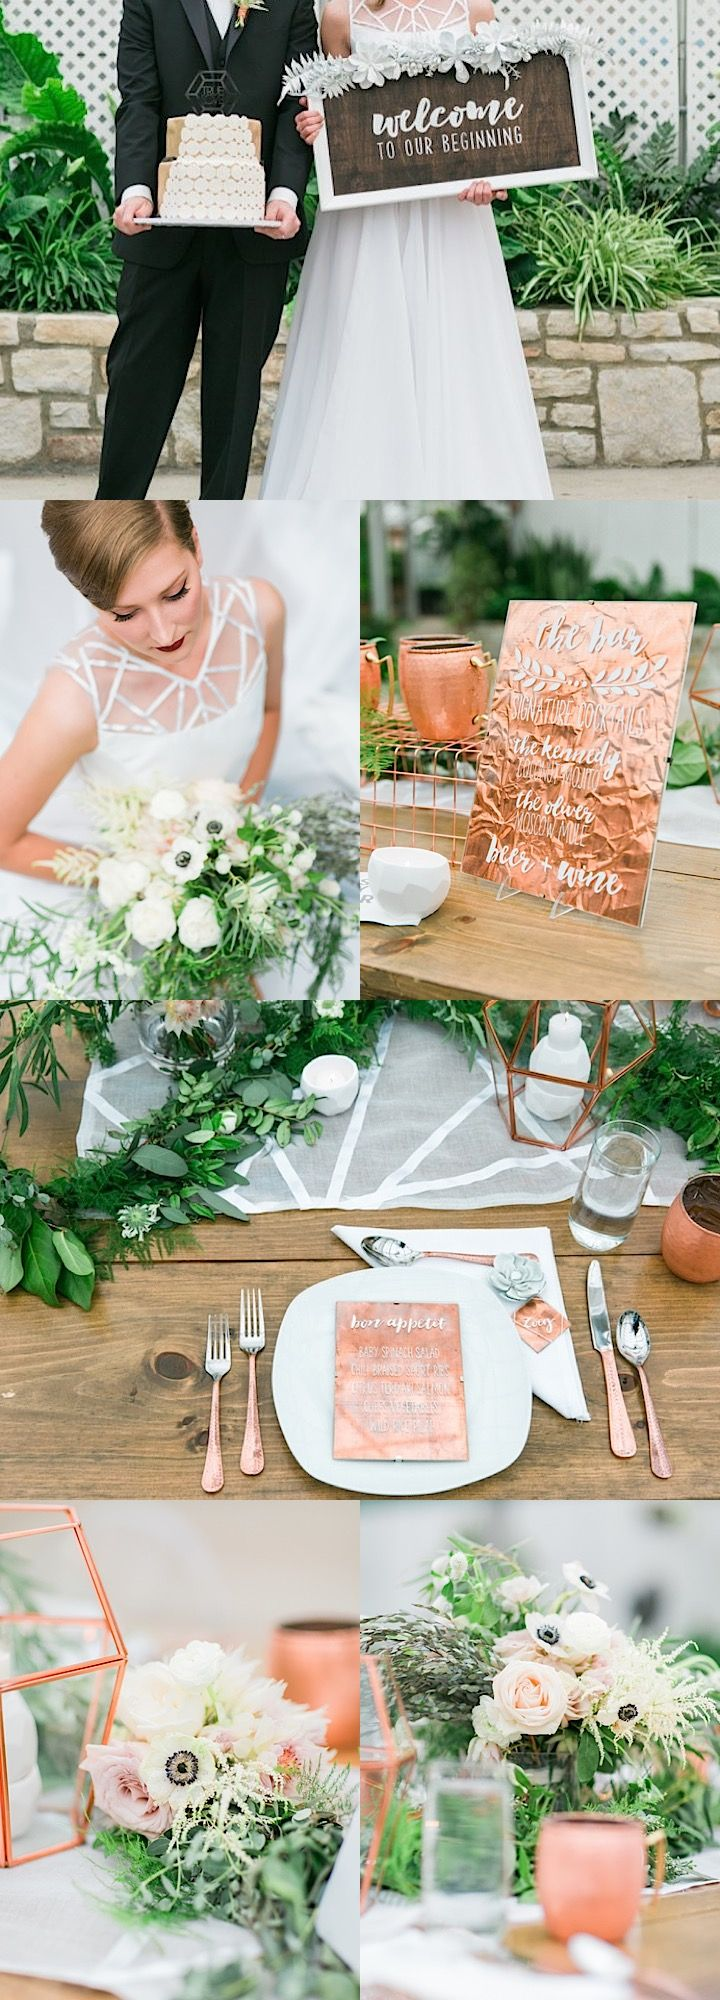 192 best Copper Wedding images on Pinterest Weddings Petit fours